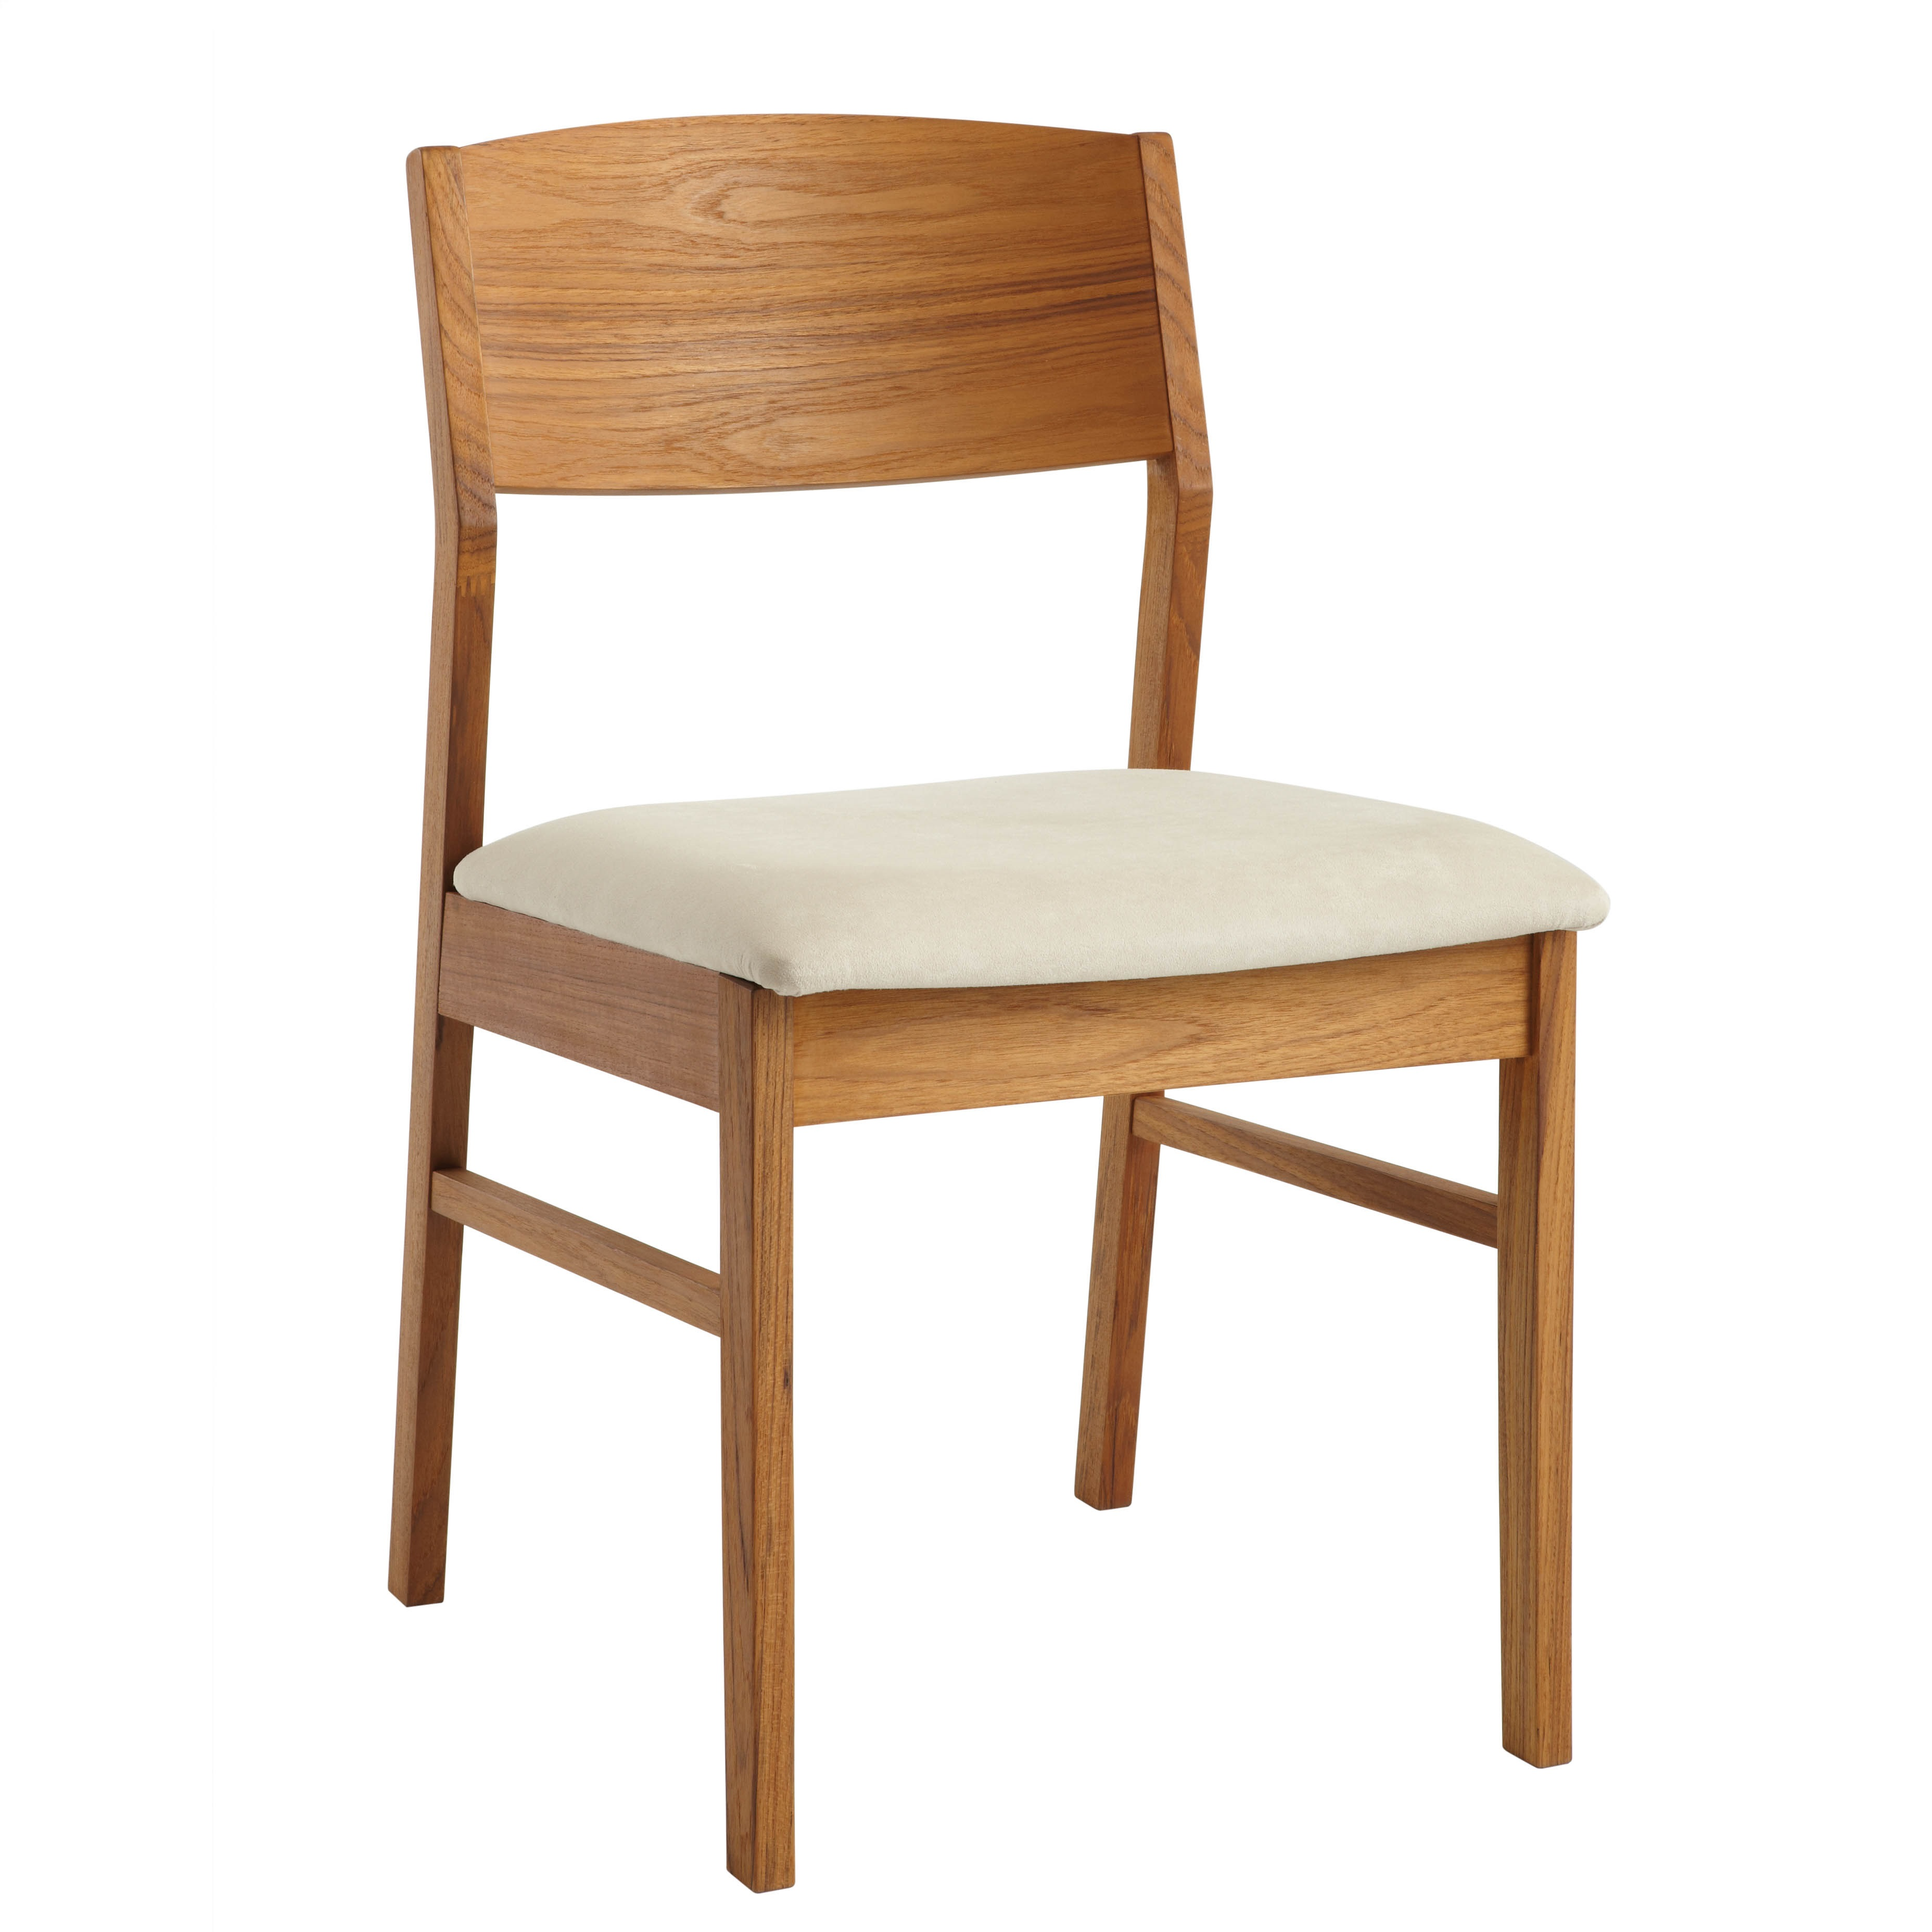 1012 Classic Teak Dining Chair  House of Denmark House of